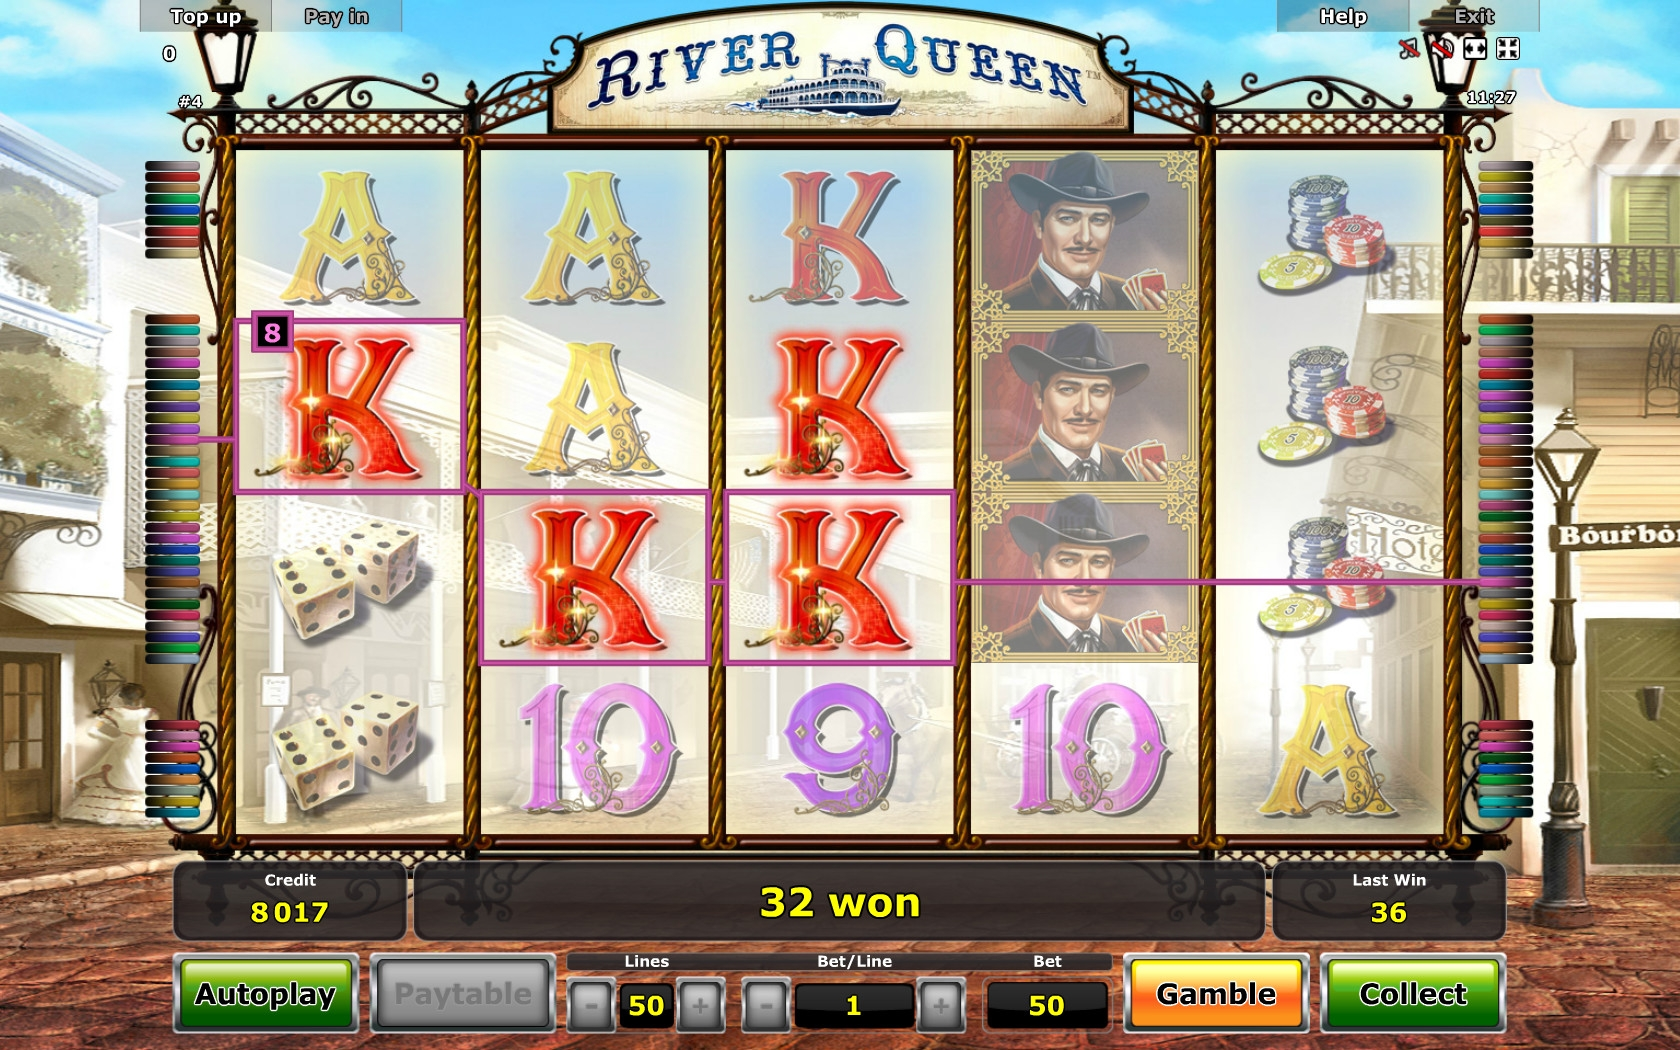 casino slots online river queen